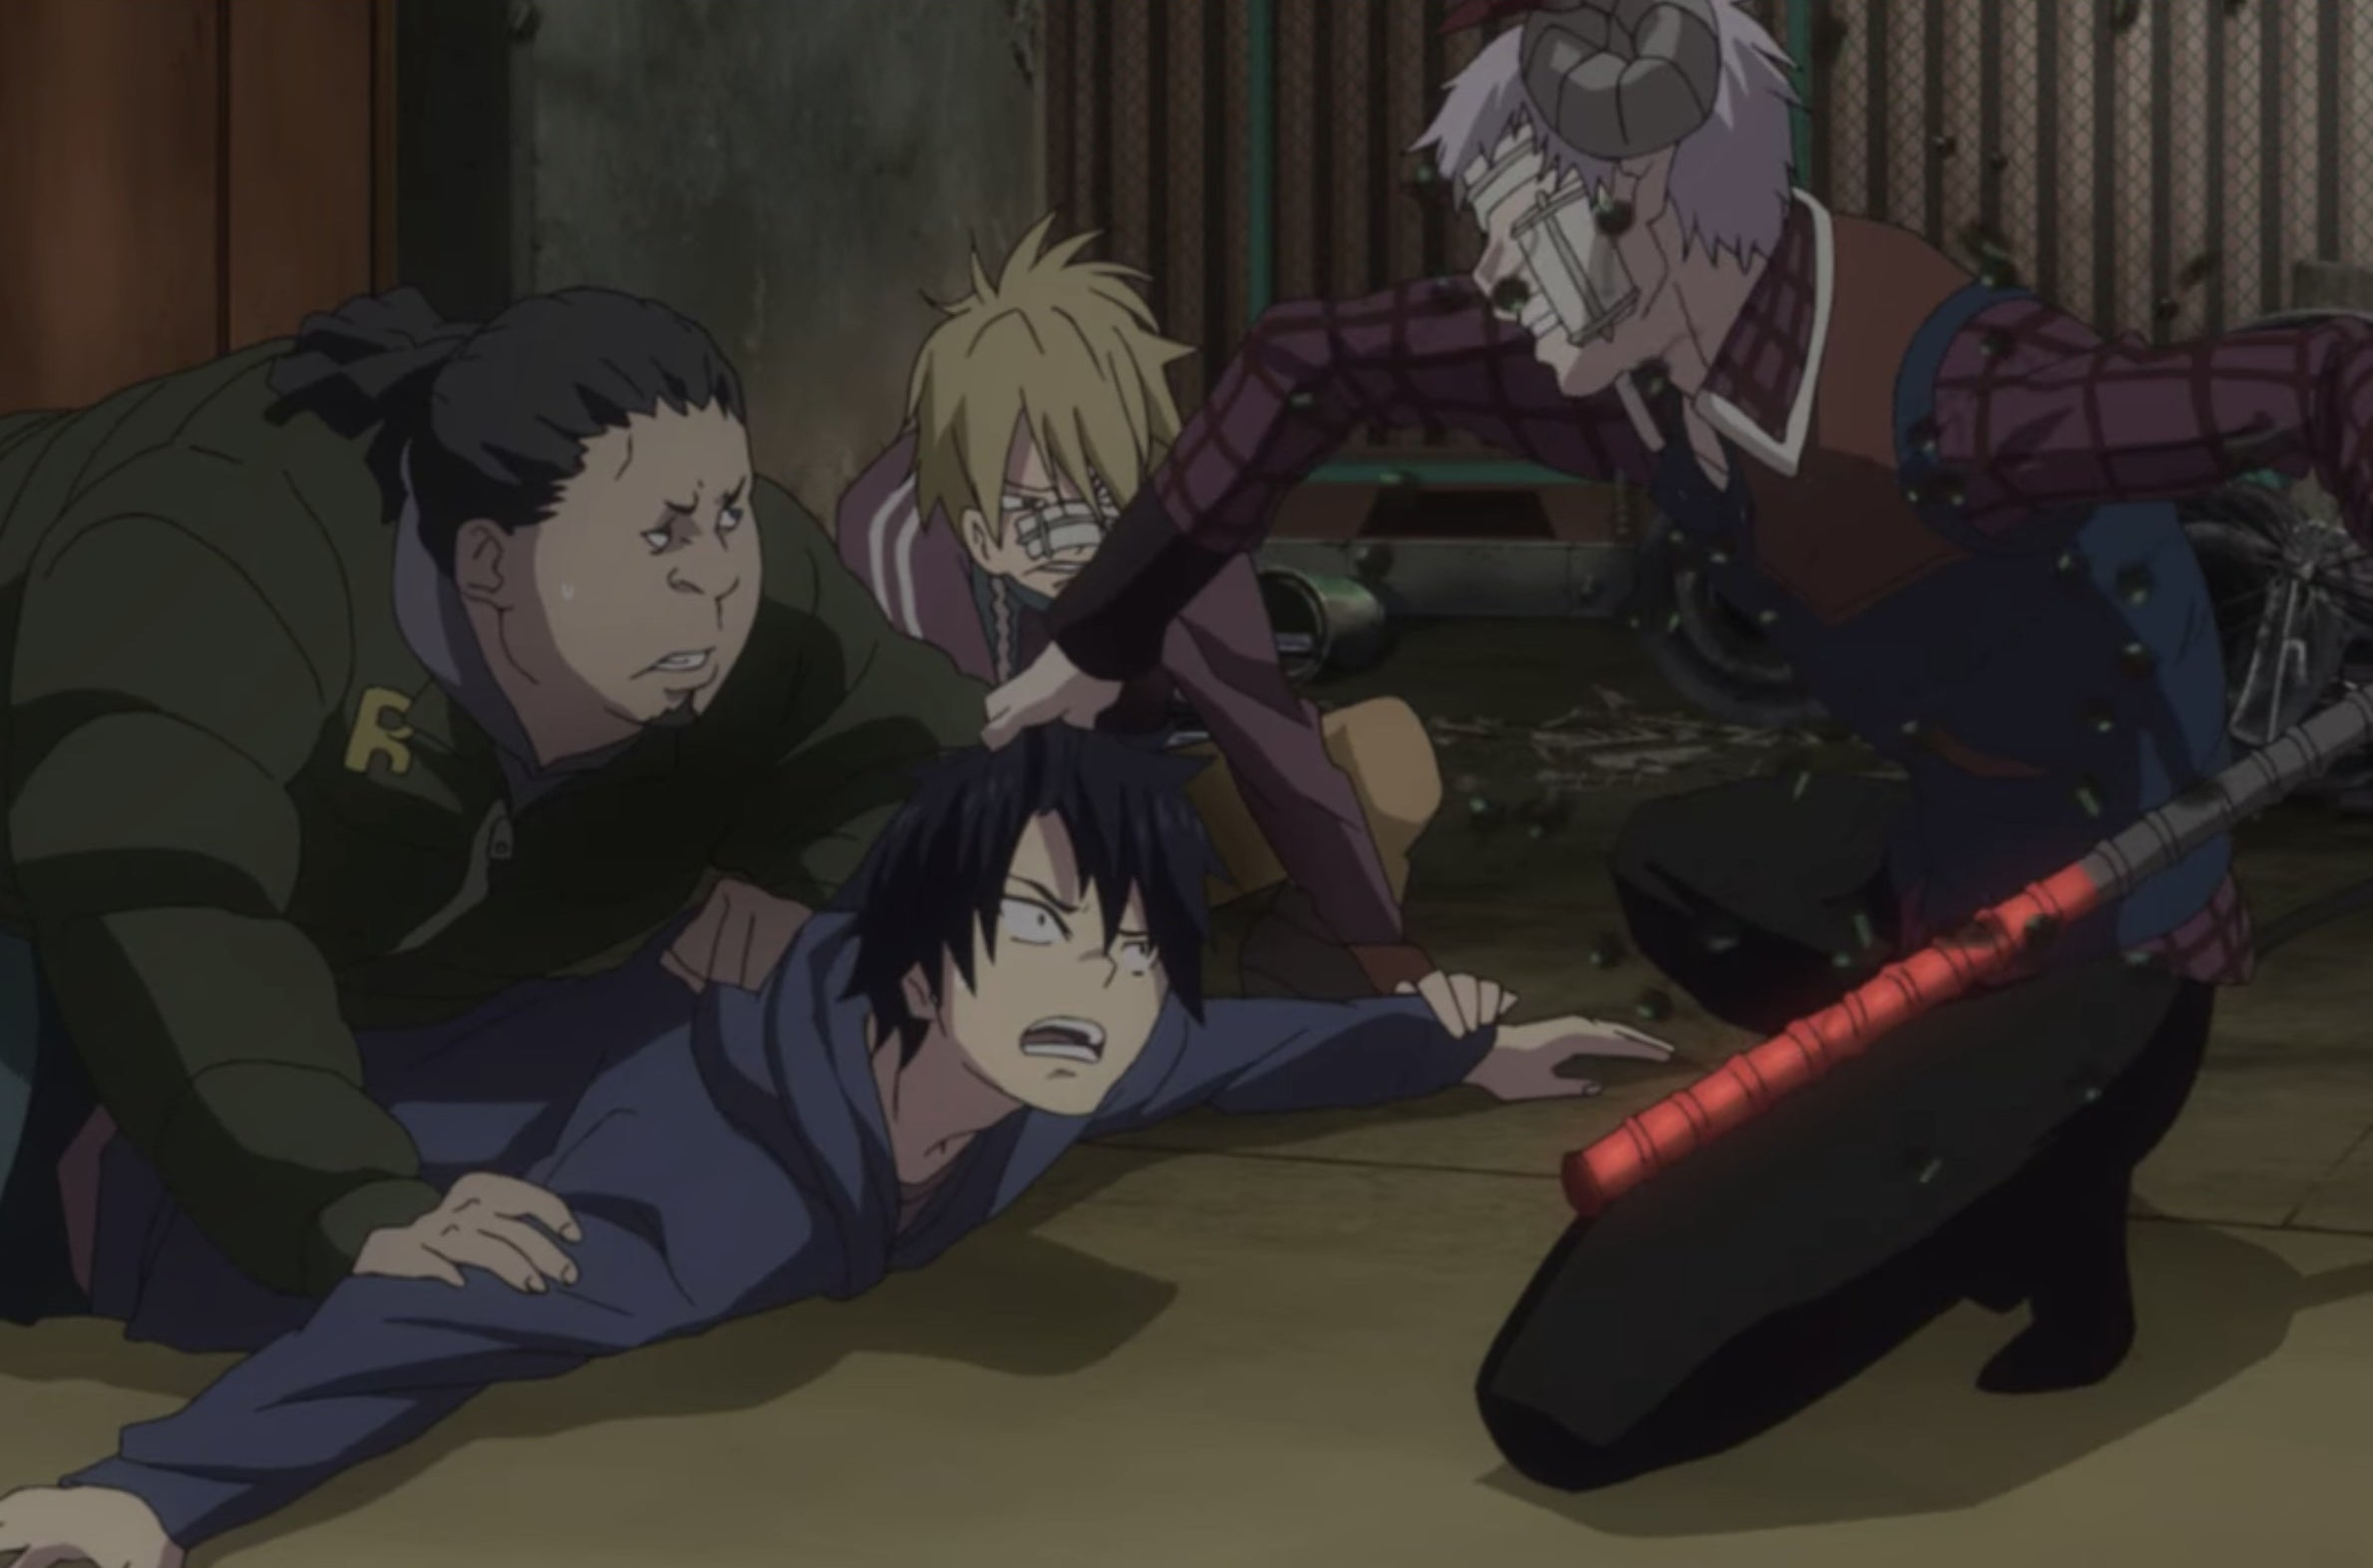 A person being pinned down by other people